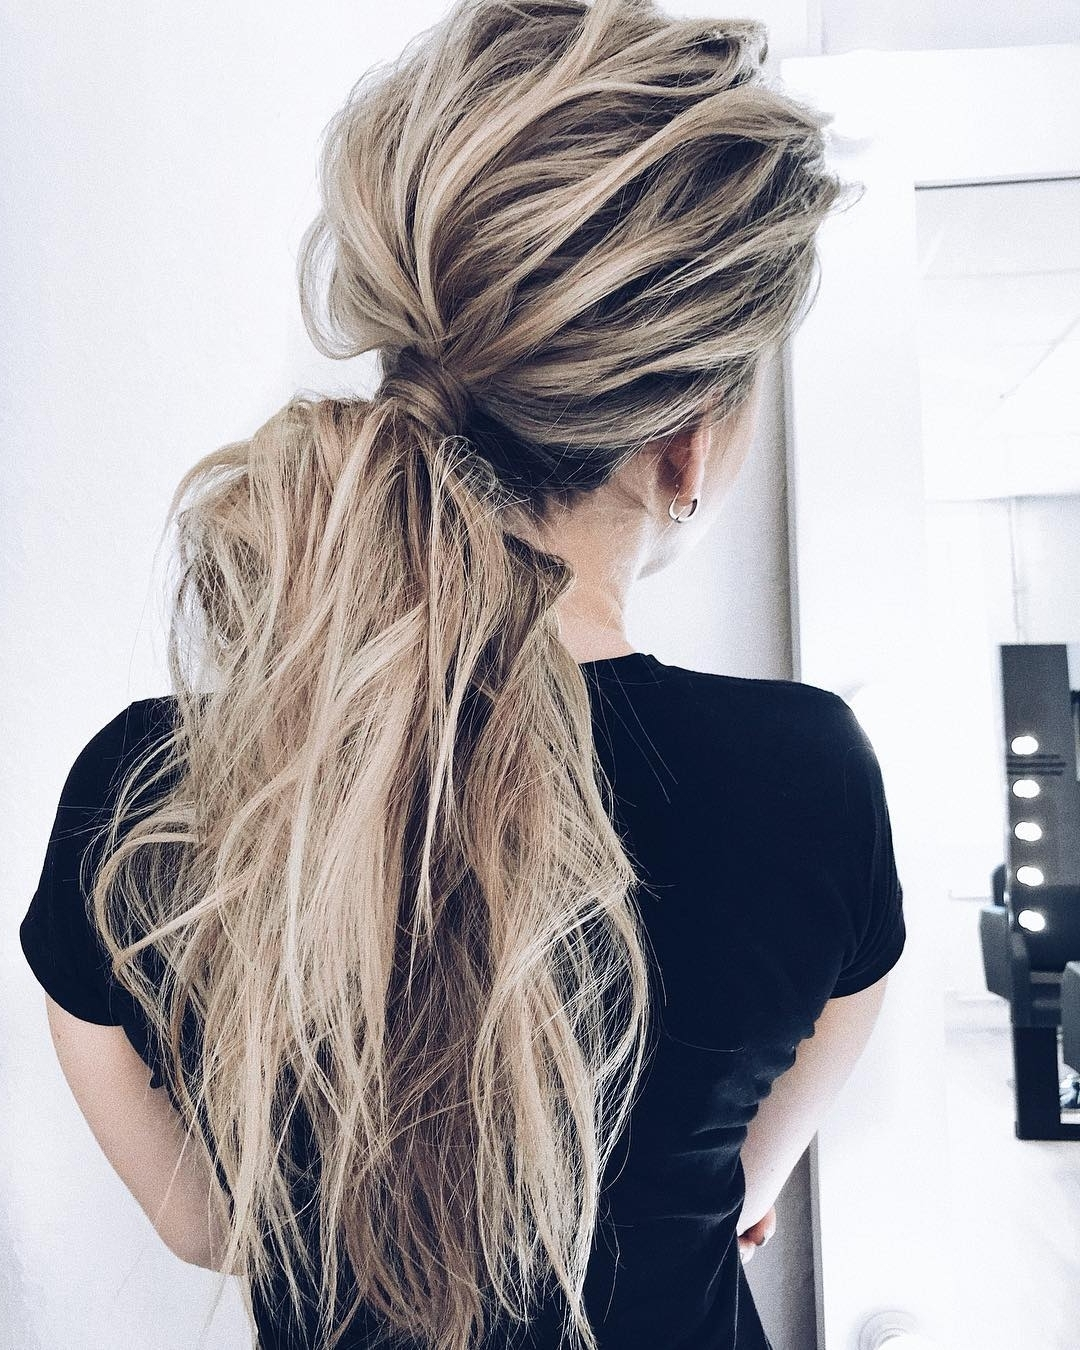 10 Creative Ponytail Hairstyles For Long Hair, Summer Hairstyle In Widely Used Low Twisted Pony Hairstyles For Ombre Hair (View 1 of 20)